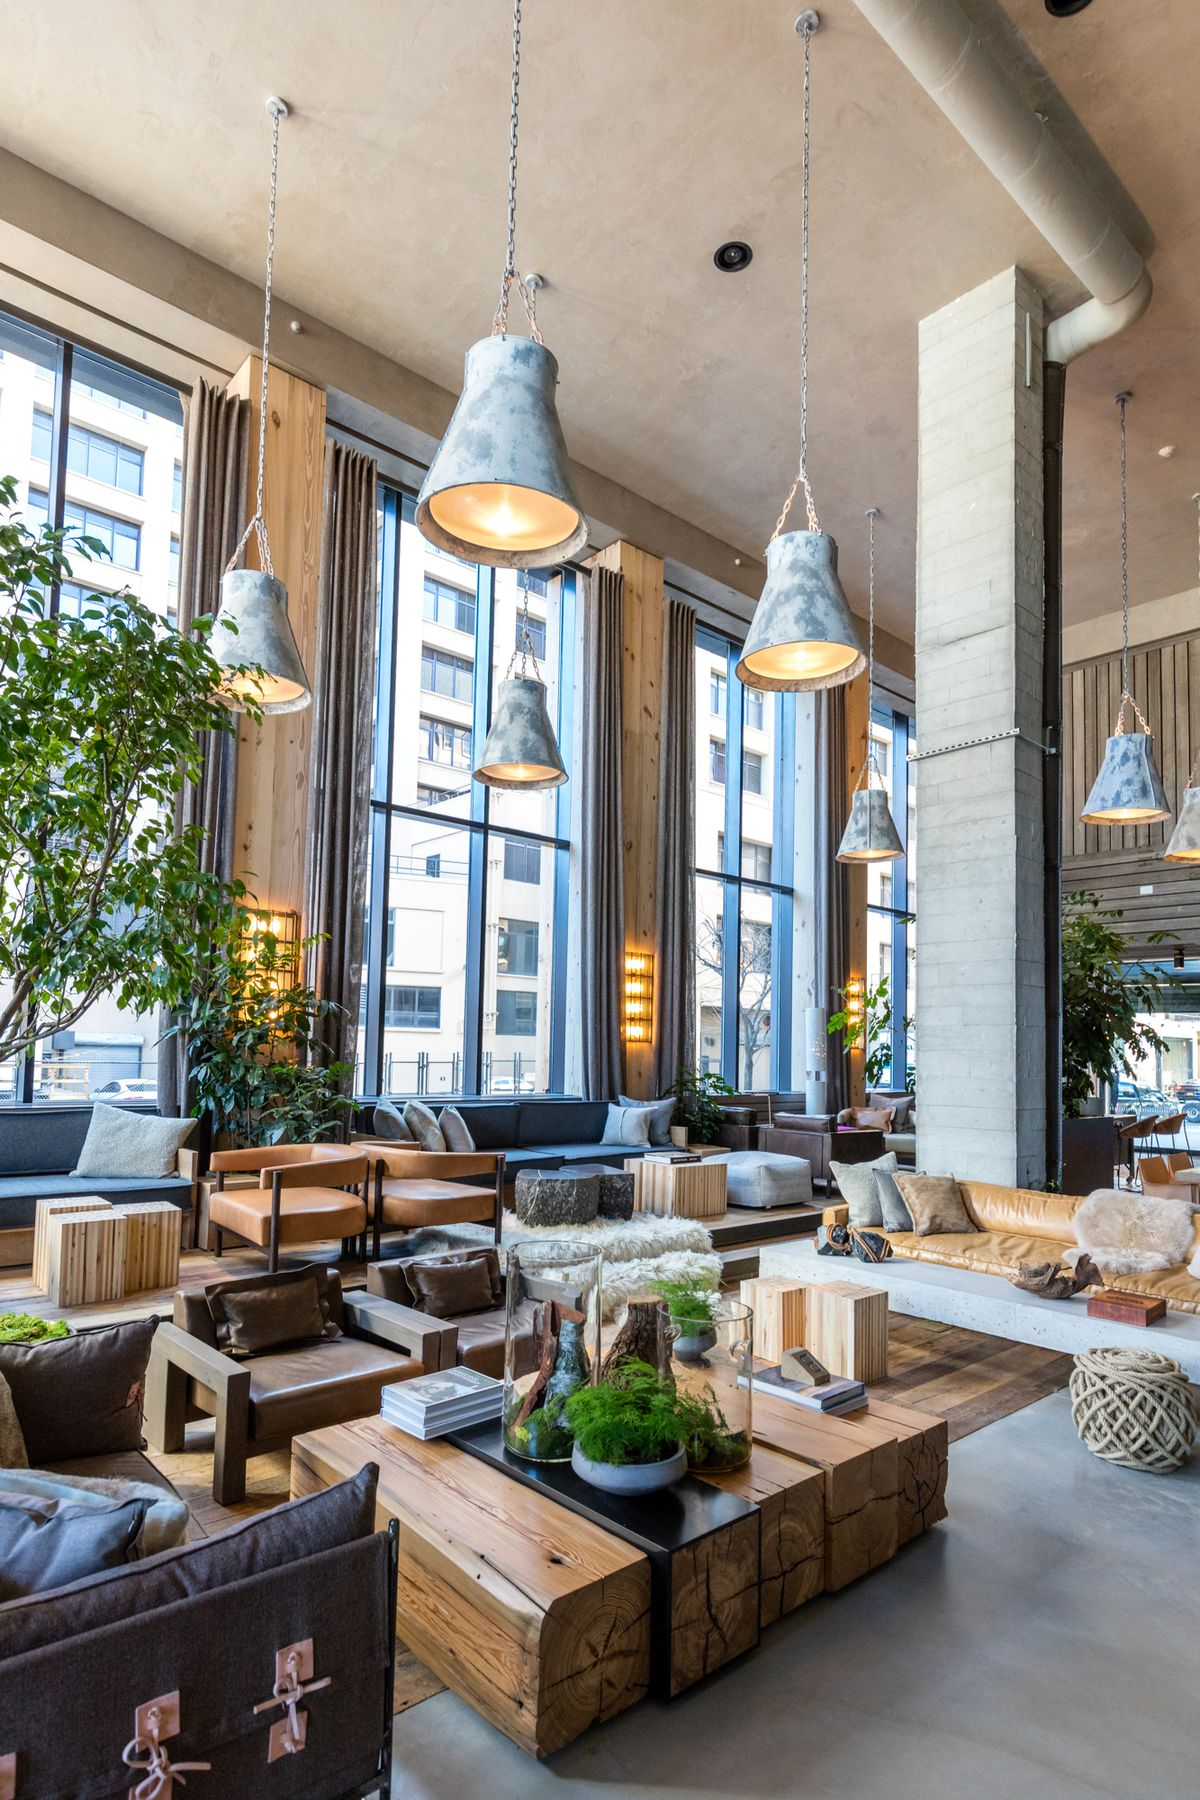 Hotel Interior: Tour 1 Hotels' New Sustainable NYC Hotel In Brooklyn